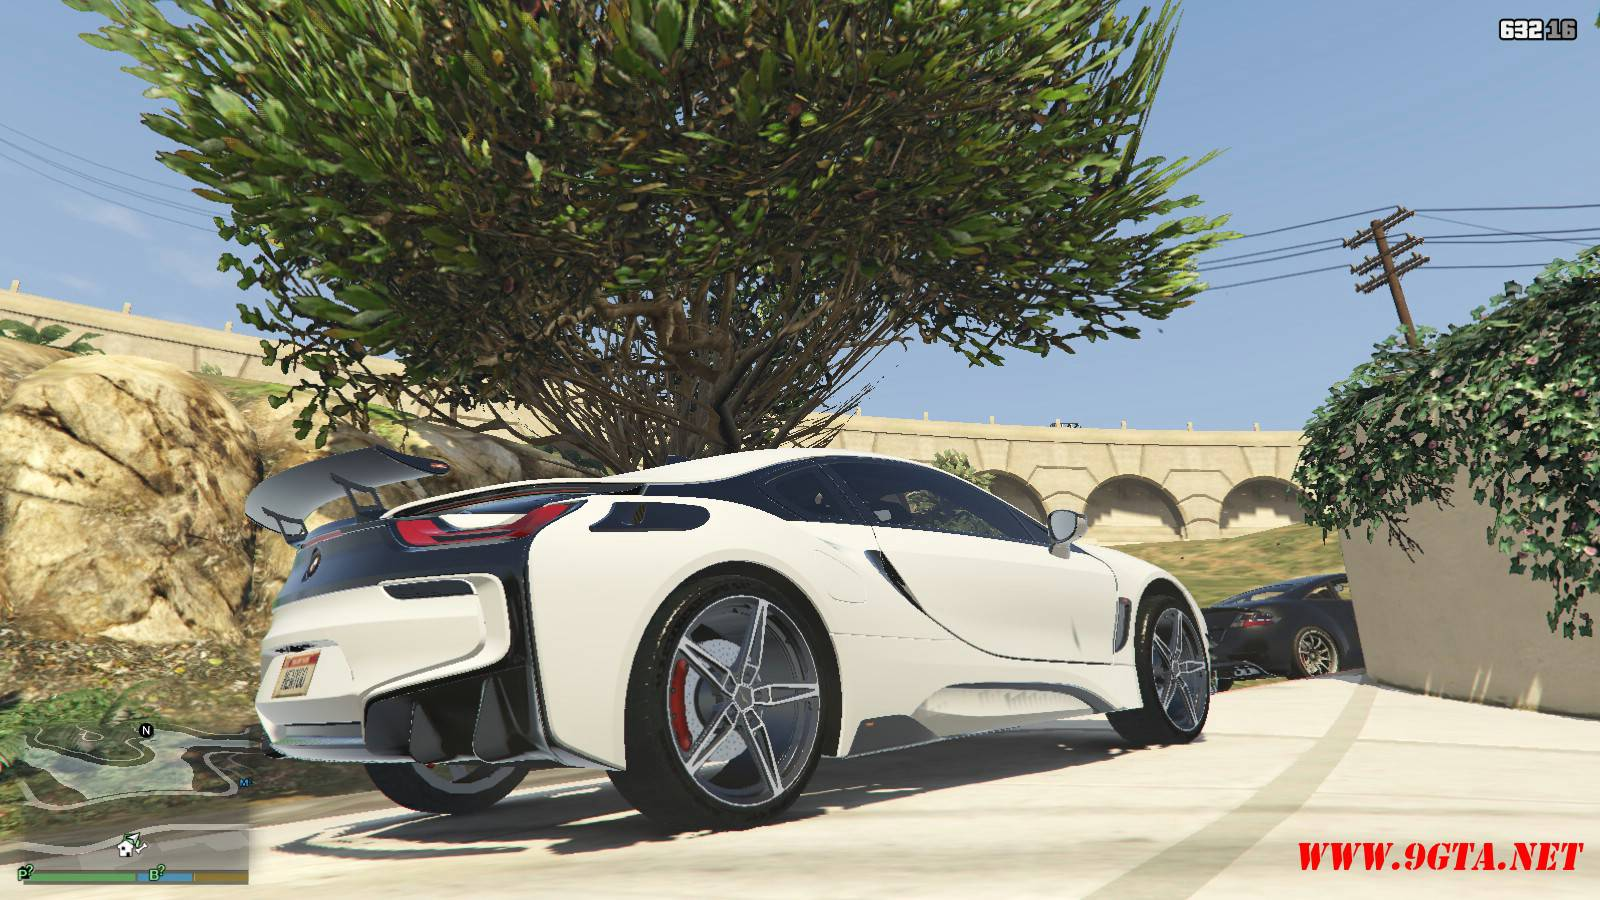 BMW i8 AC Schinitzer ACS8 Mod For GTA5 (6)